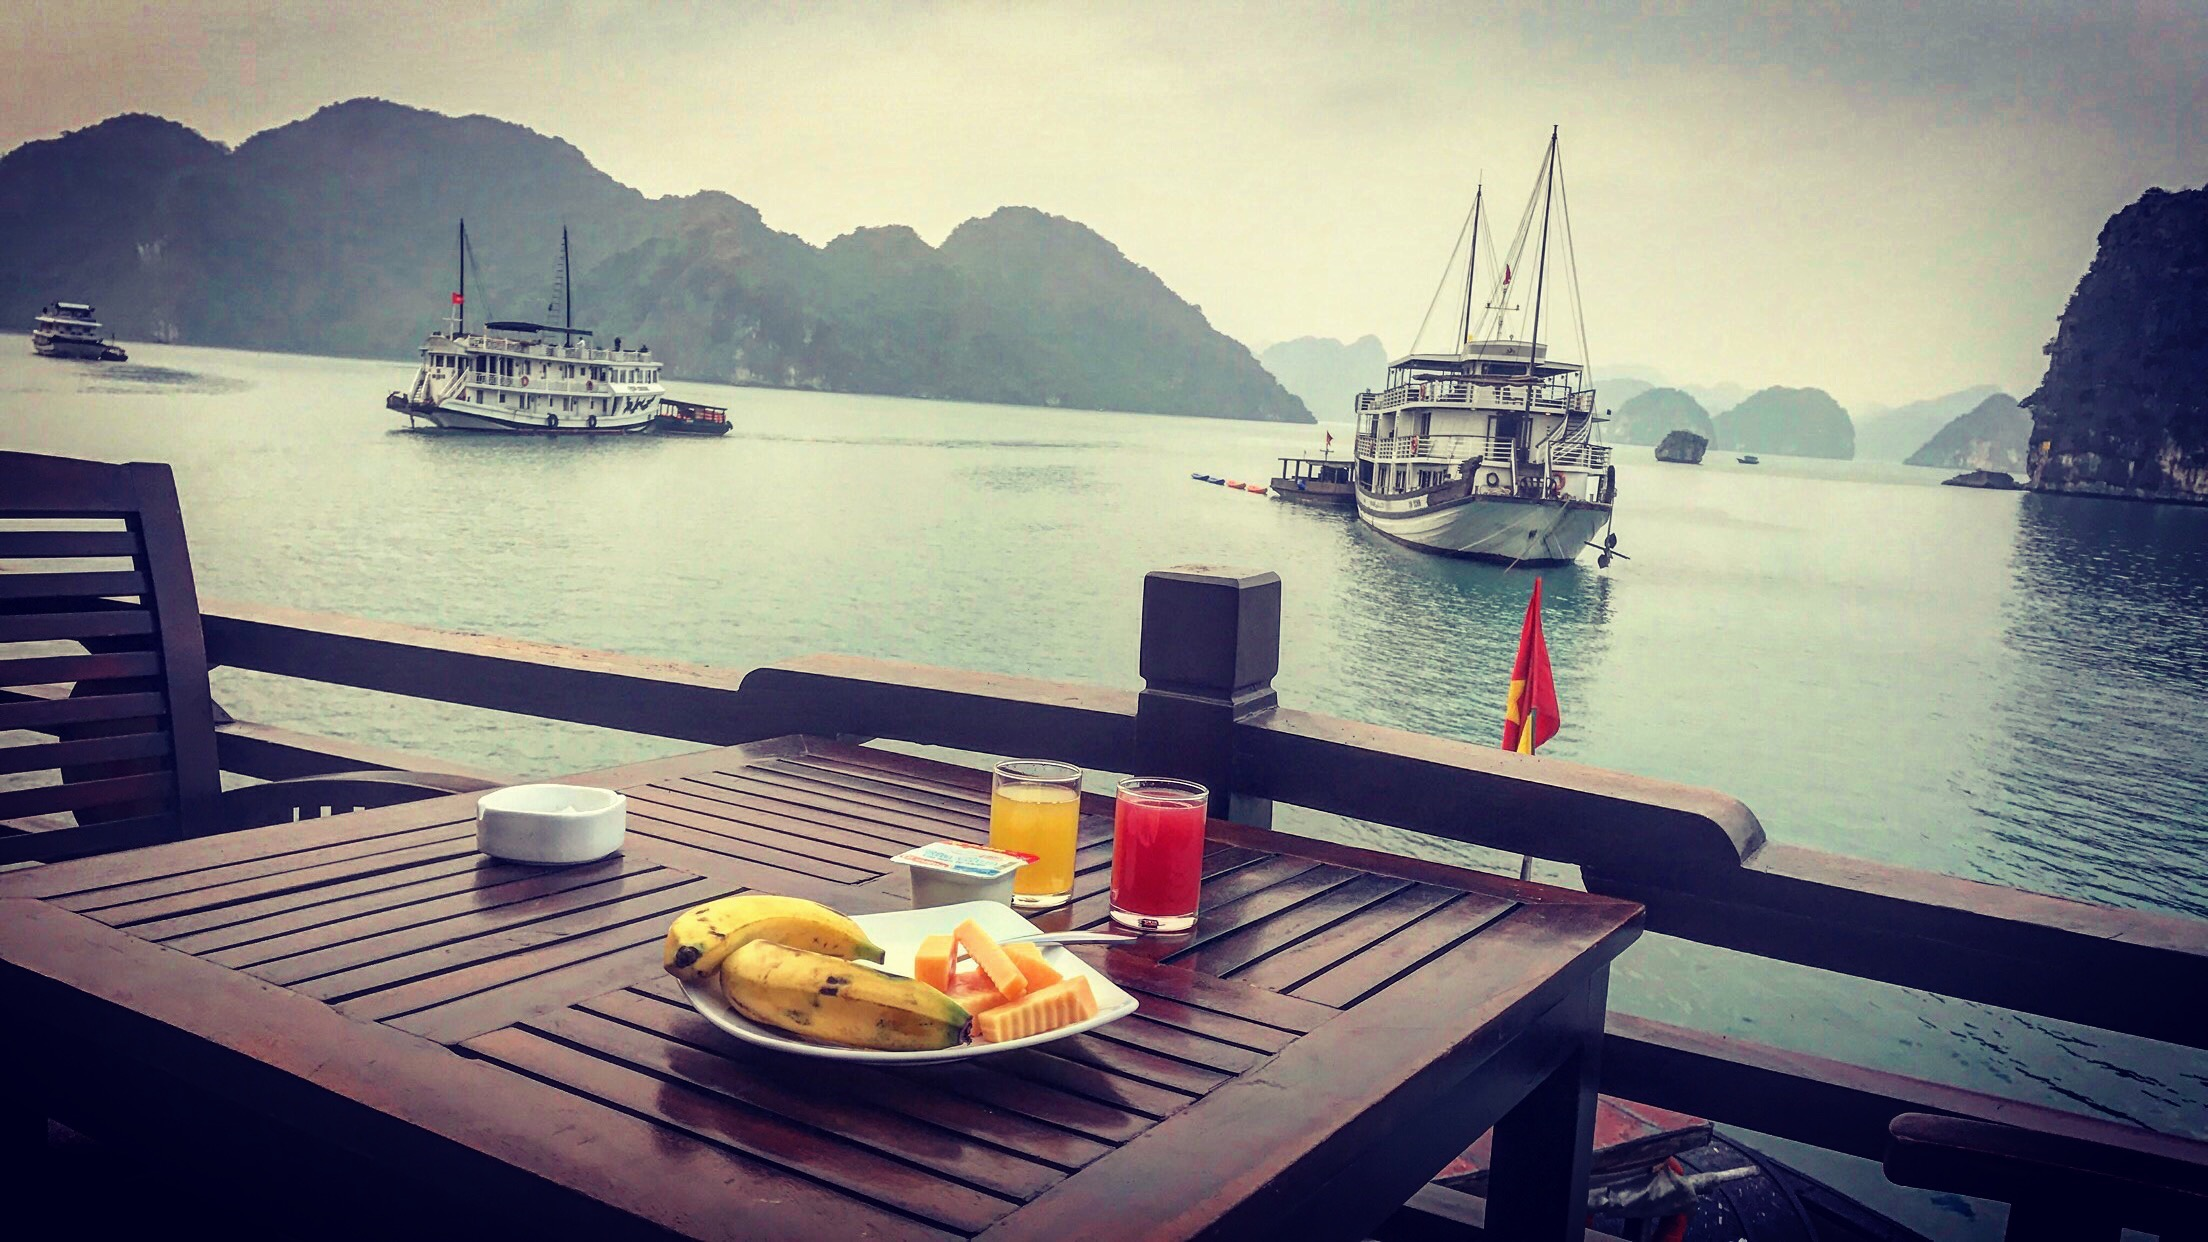 Typical Breakfast at the Halong Bay Cruise in Vietnam